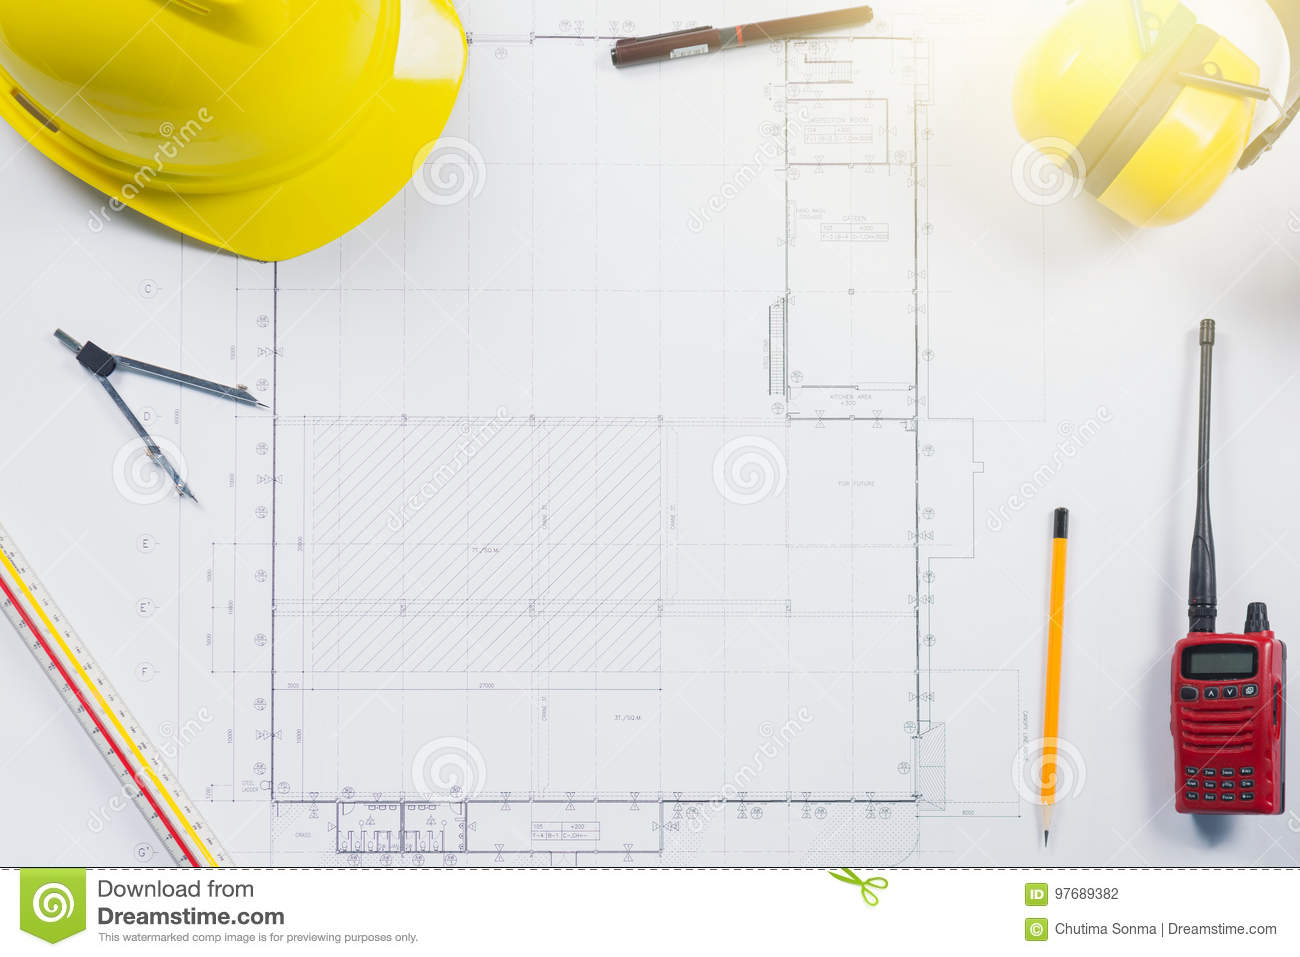 Construction Plans With Yellow Helmet And Drawing Tools On Blueprints At  Office